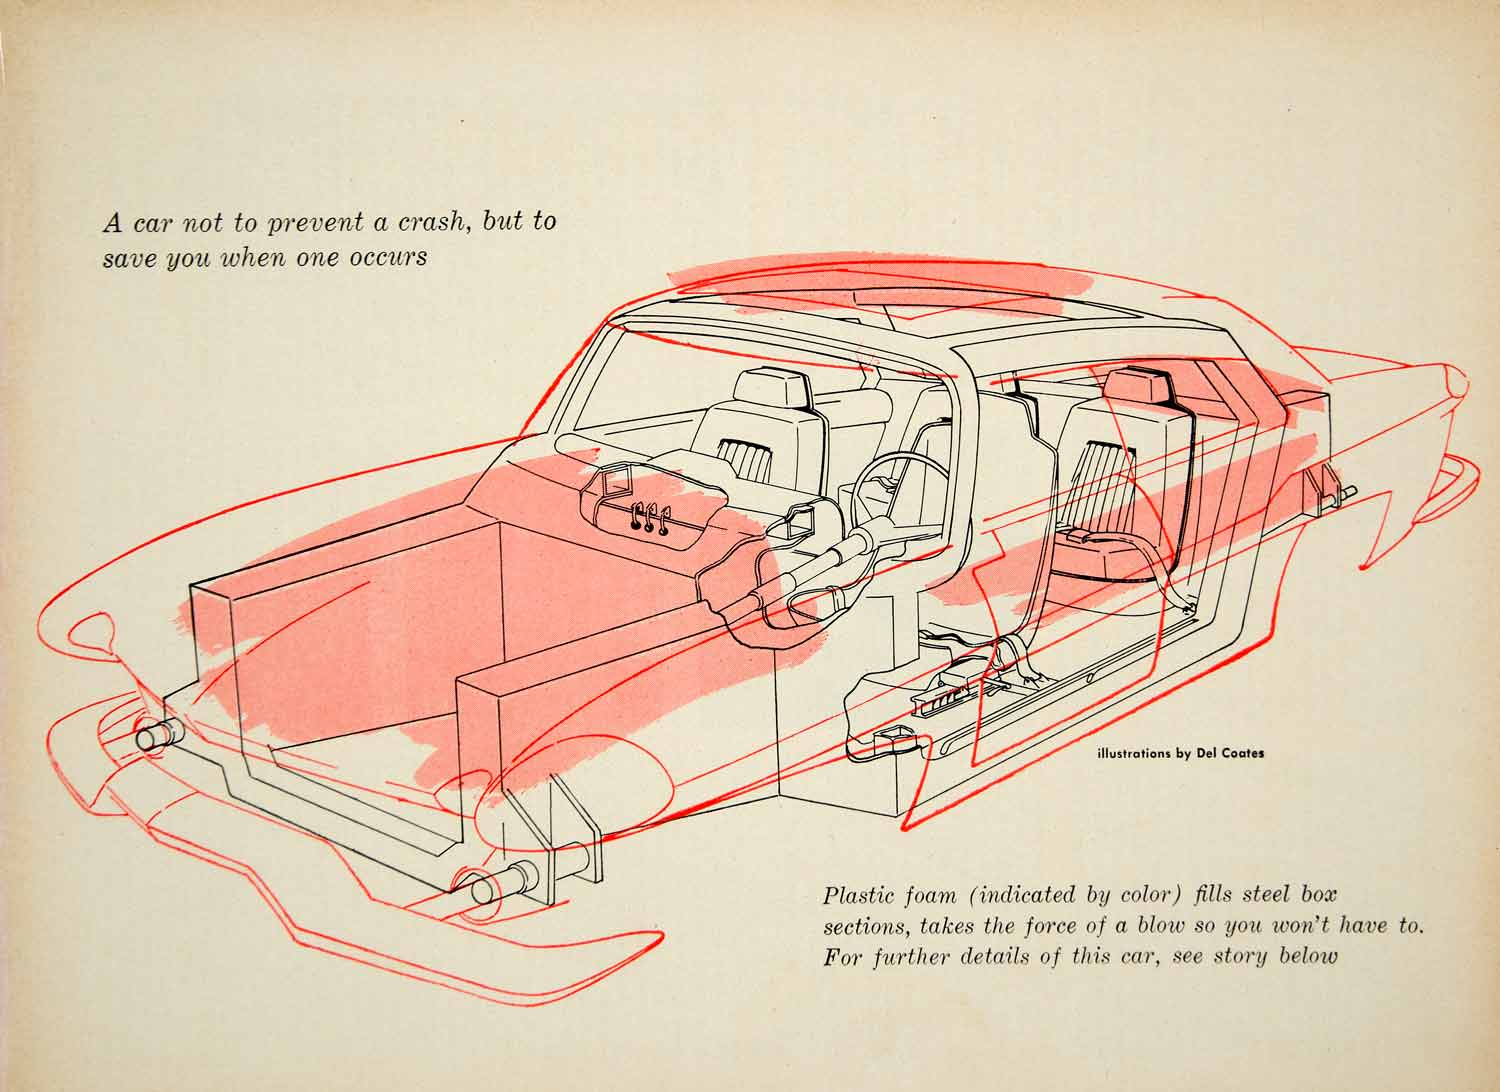 1955 Article Del Coates Art Classic Car Automobile Cross Section Safety YMT1